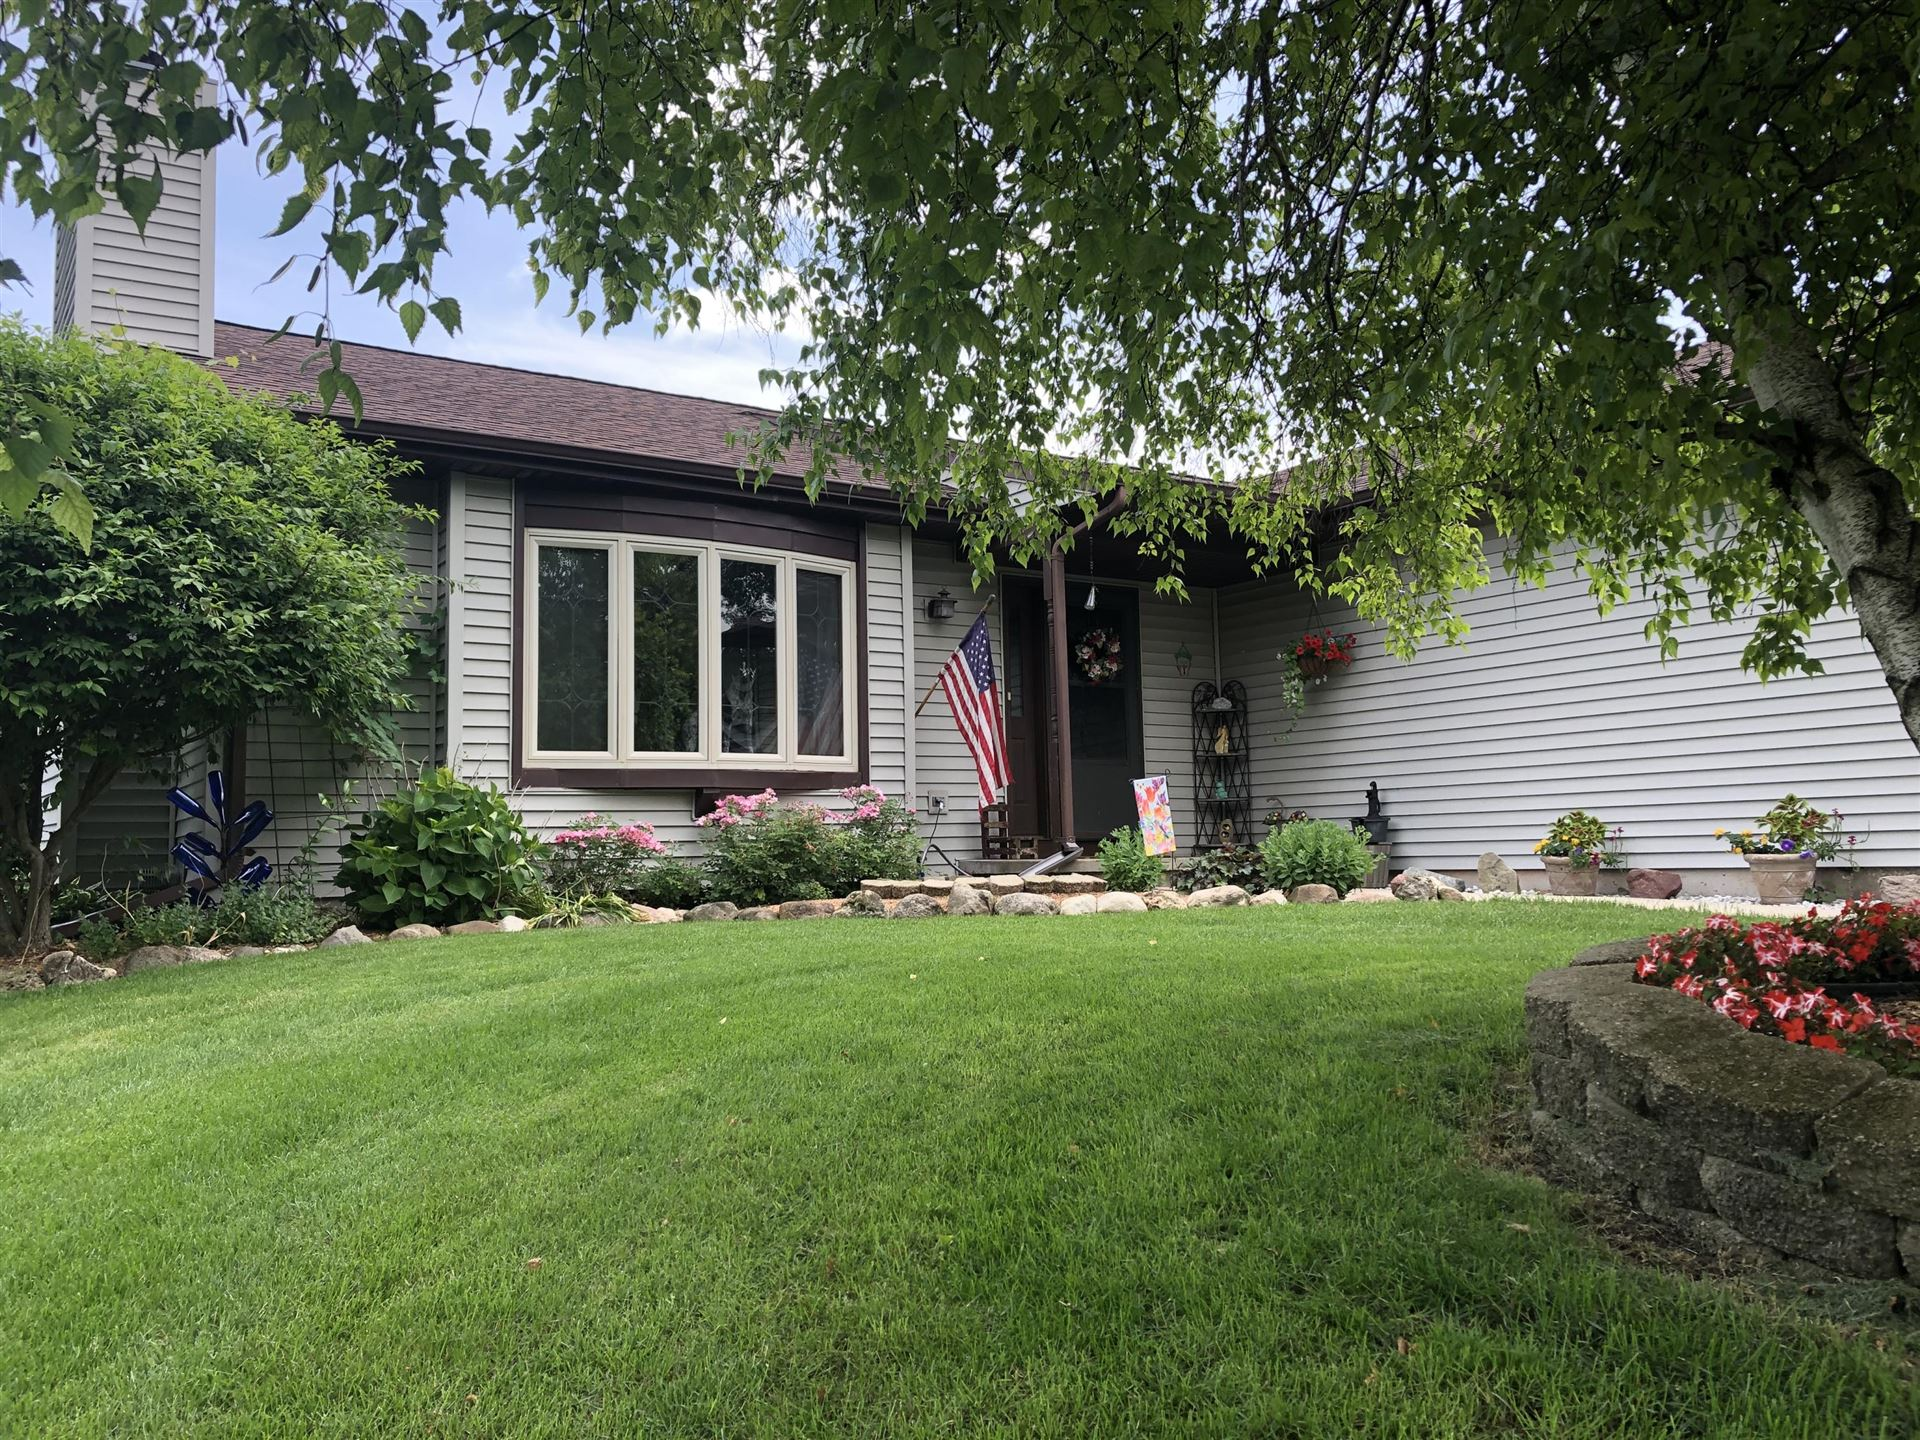 1013 Sycamore Tree Dr, Fond du Lac, WI 54935 - #: 1696964